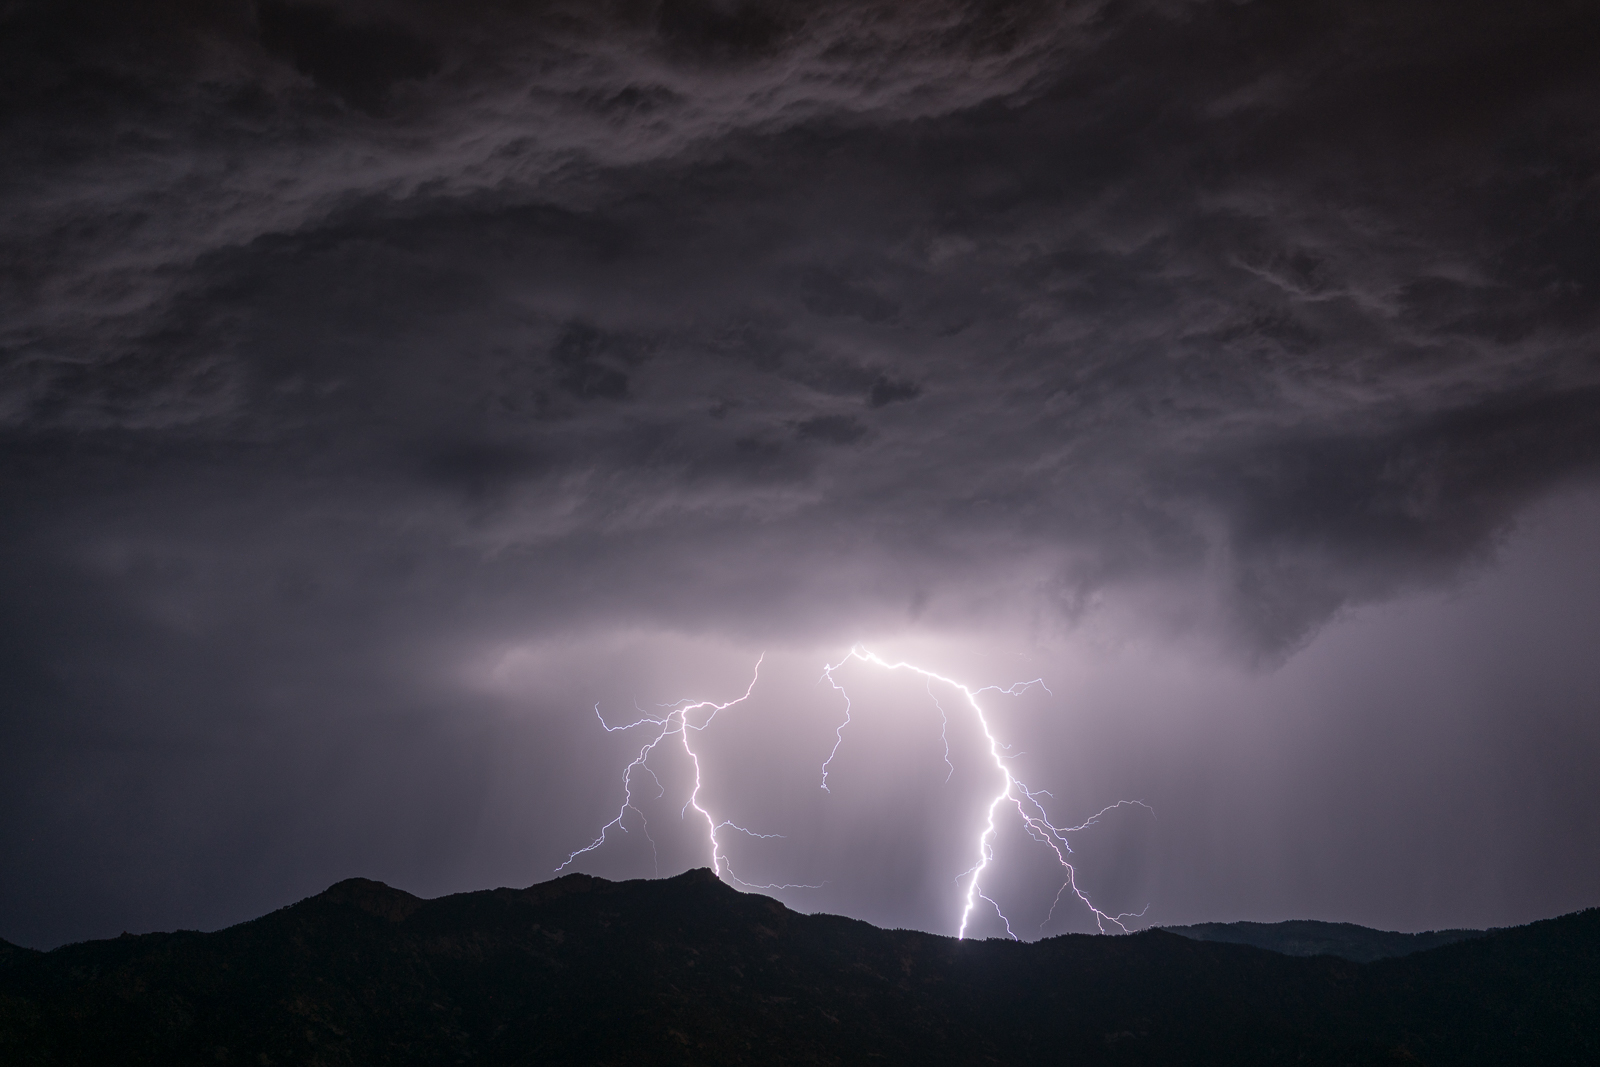 Lightning over Samaniego Ridge on the west side of the Santa Catalina Mountains - taken from the Golder Ranch area. July 2016.